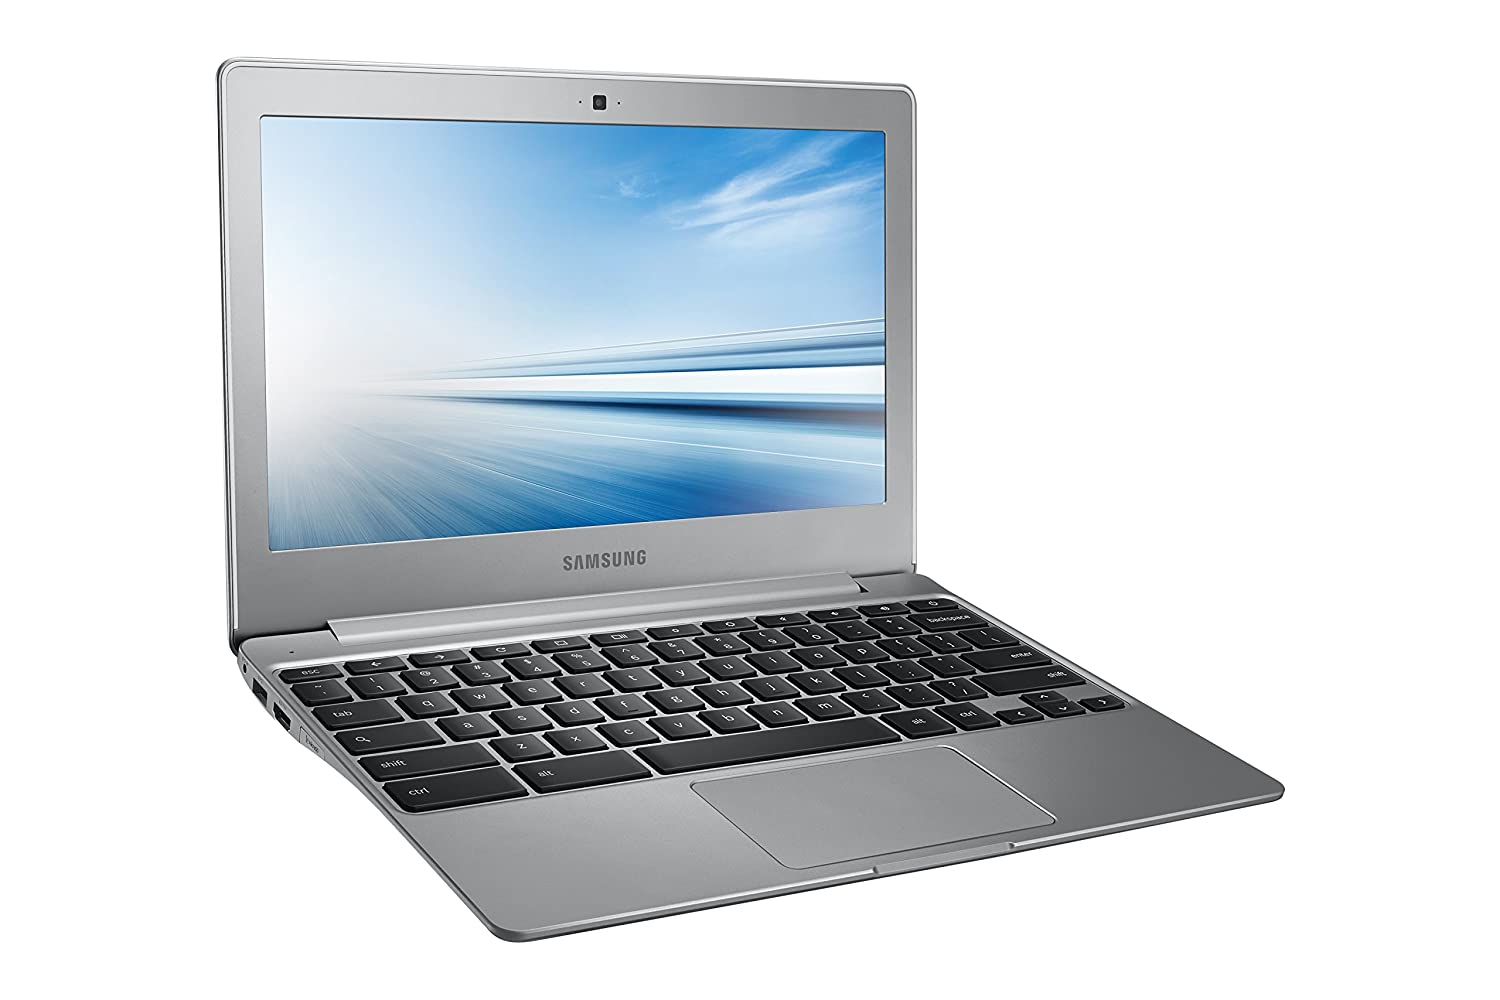 The Samsung Chromebook 2 is one of the best Chromebooks.